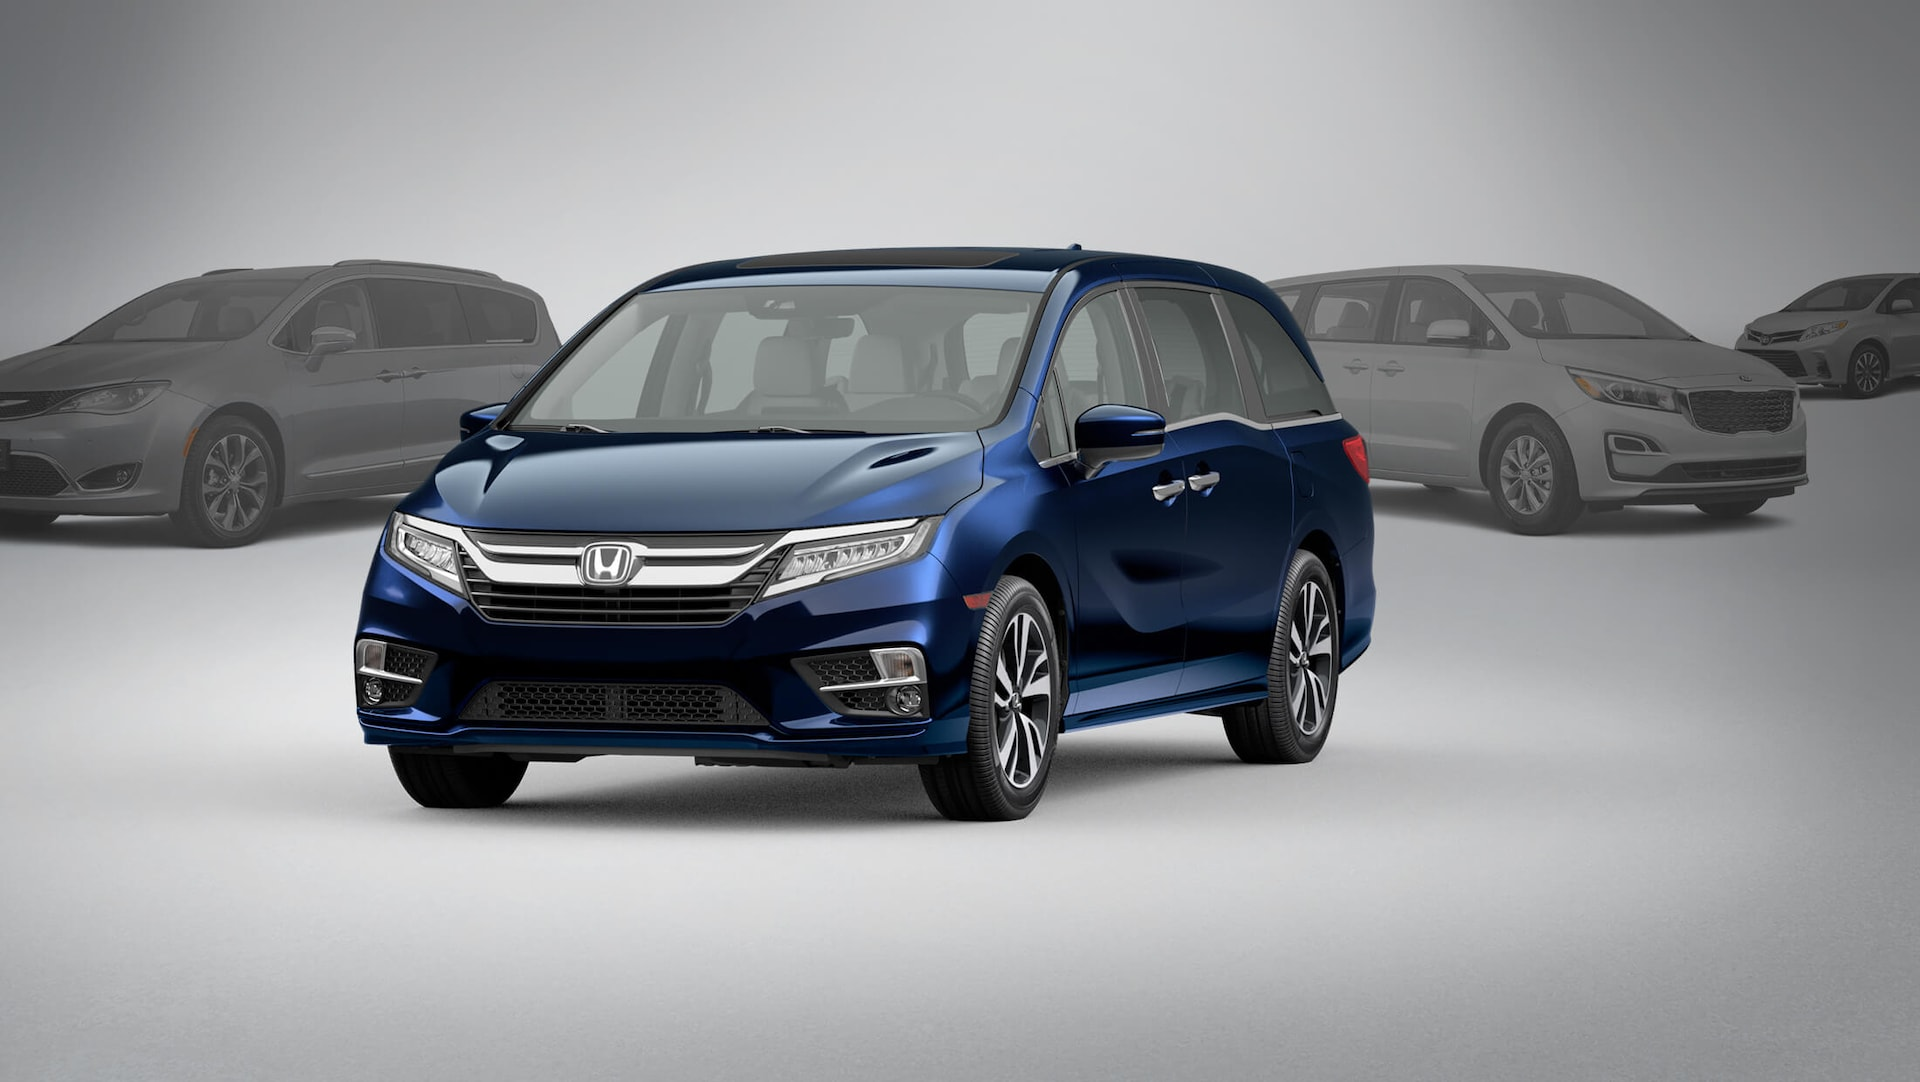 Front 3/4 driver-side view of 2020 Honda Odyssey in Obsidian Blue Pearl parked in front of competitors.